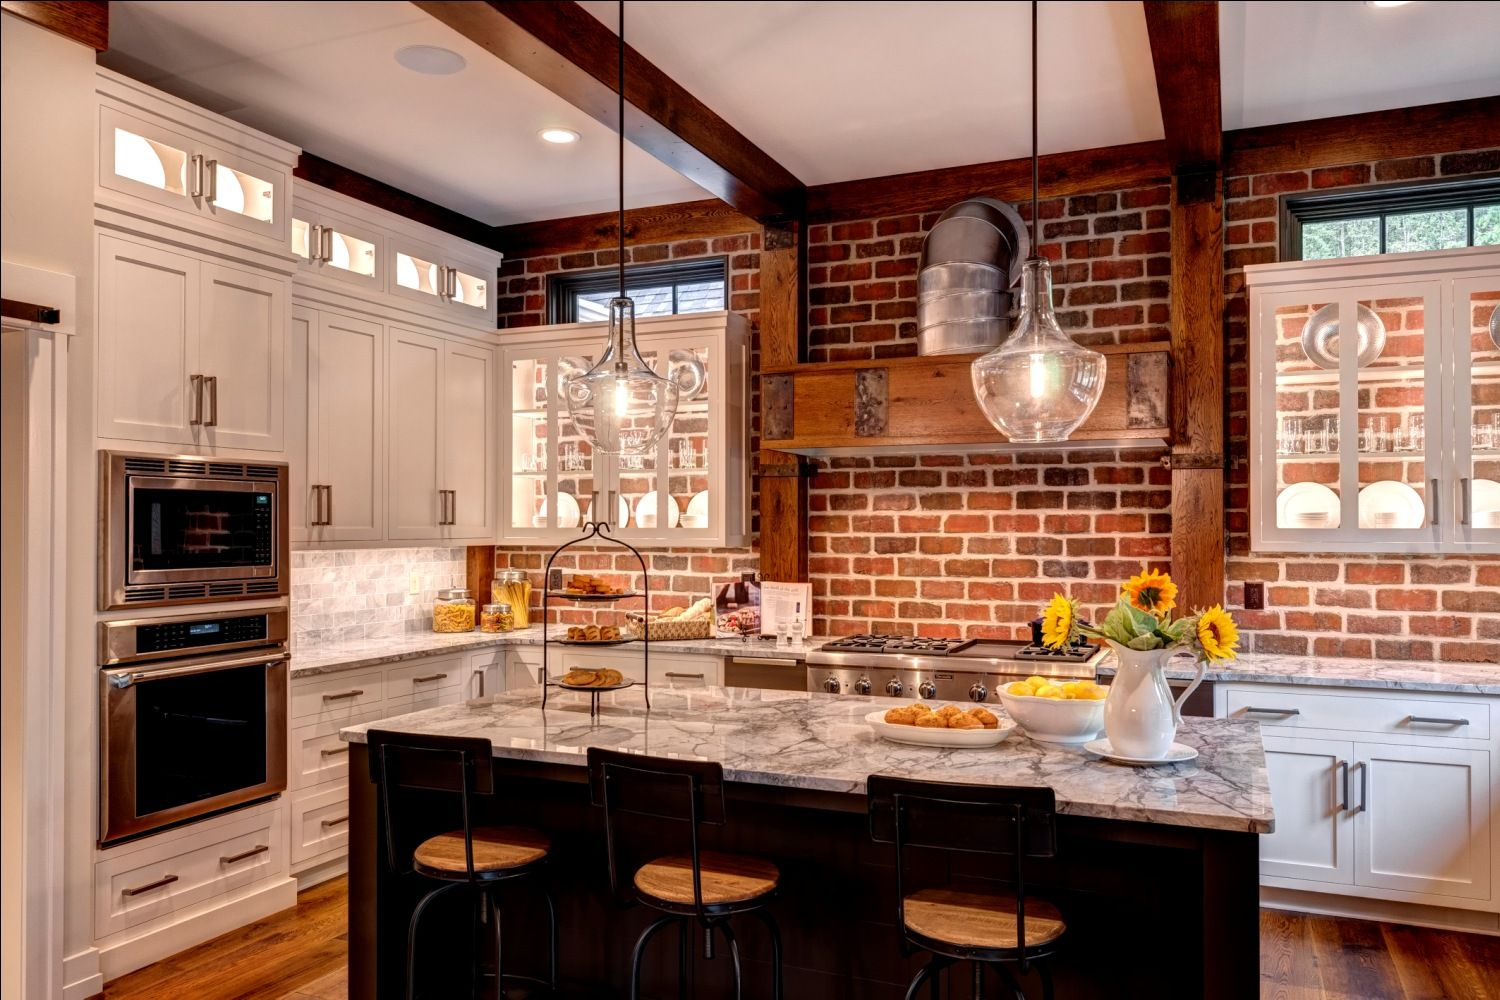 Best Kitchen Gallery: Brick Wall In Kitchen With White Cabi S Glass Cabi Doors To of Brick Kitchen Cabinets on rachelxblog.com